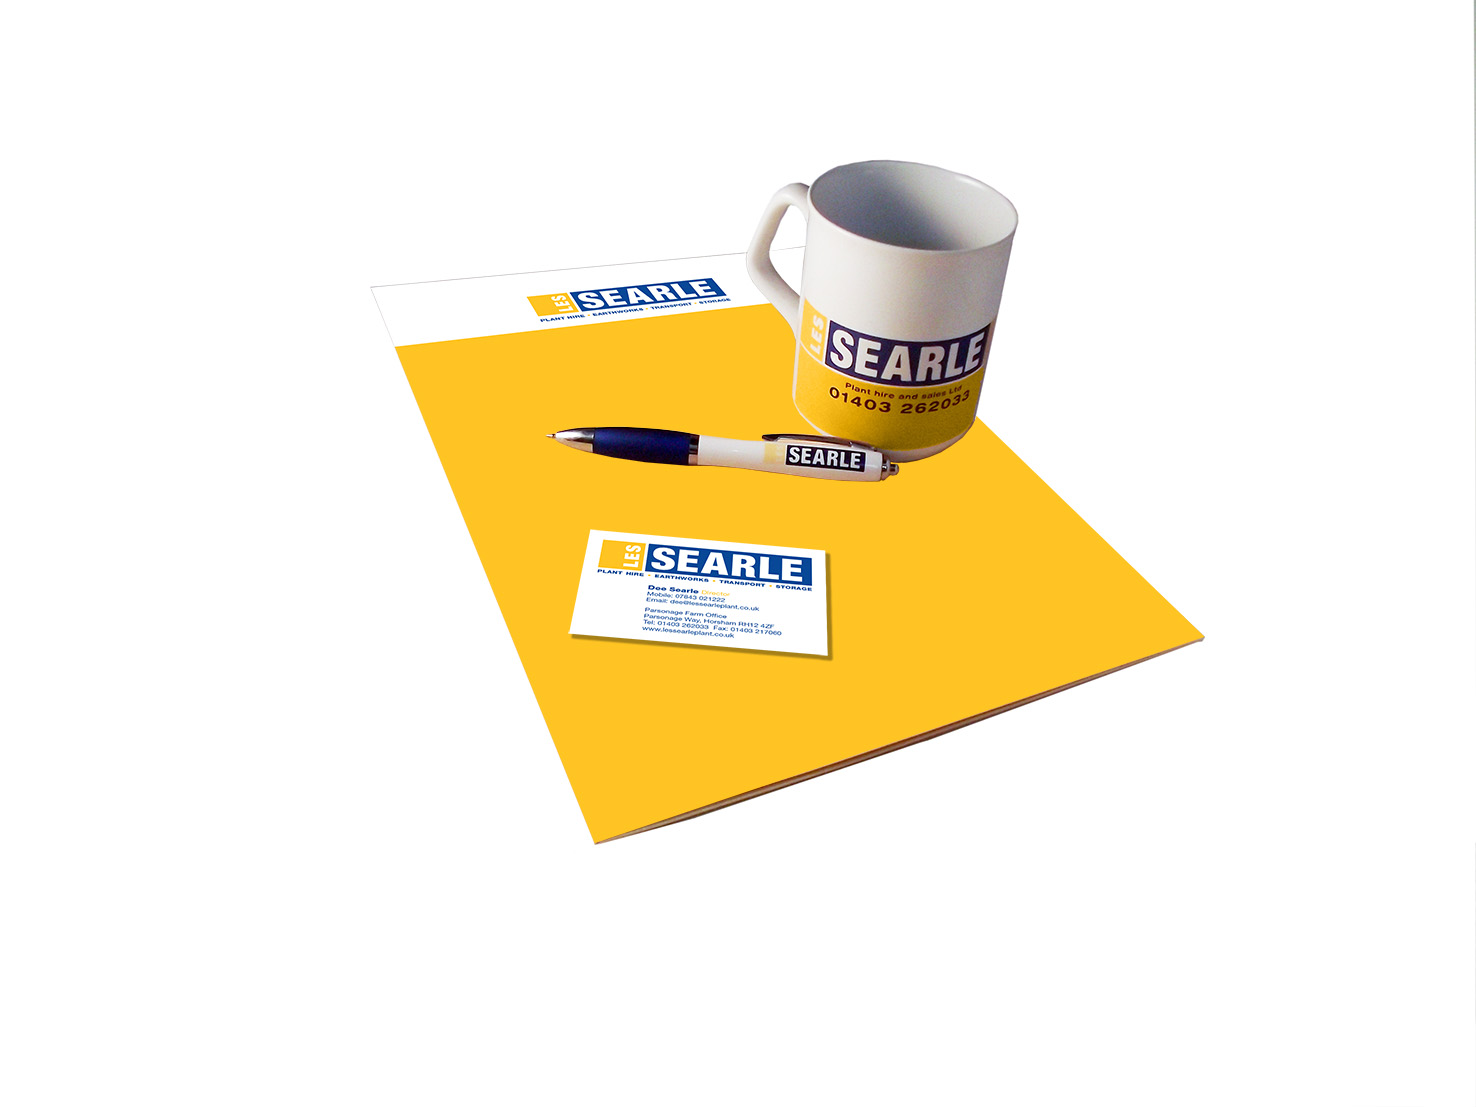 Les Searle mug and stationery